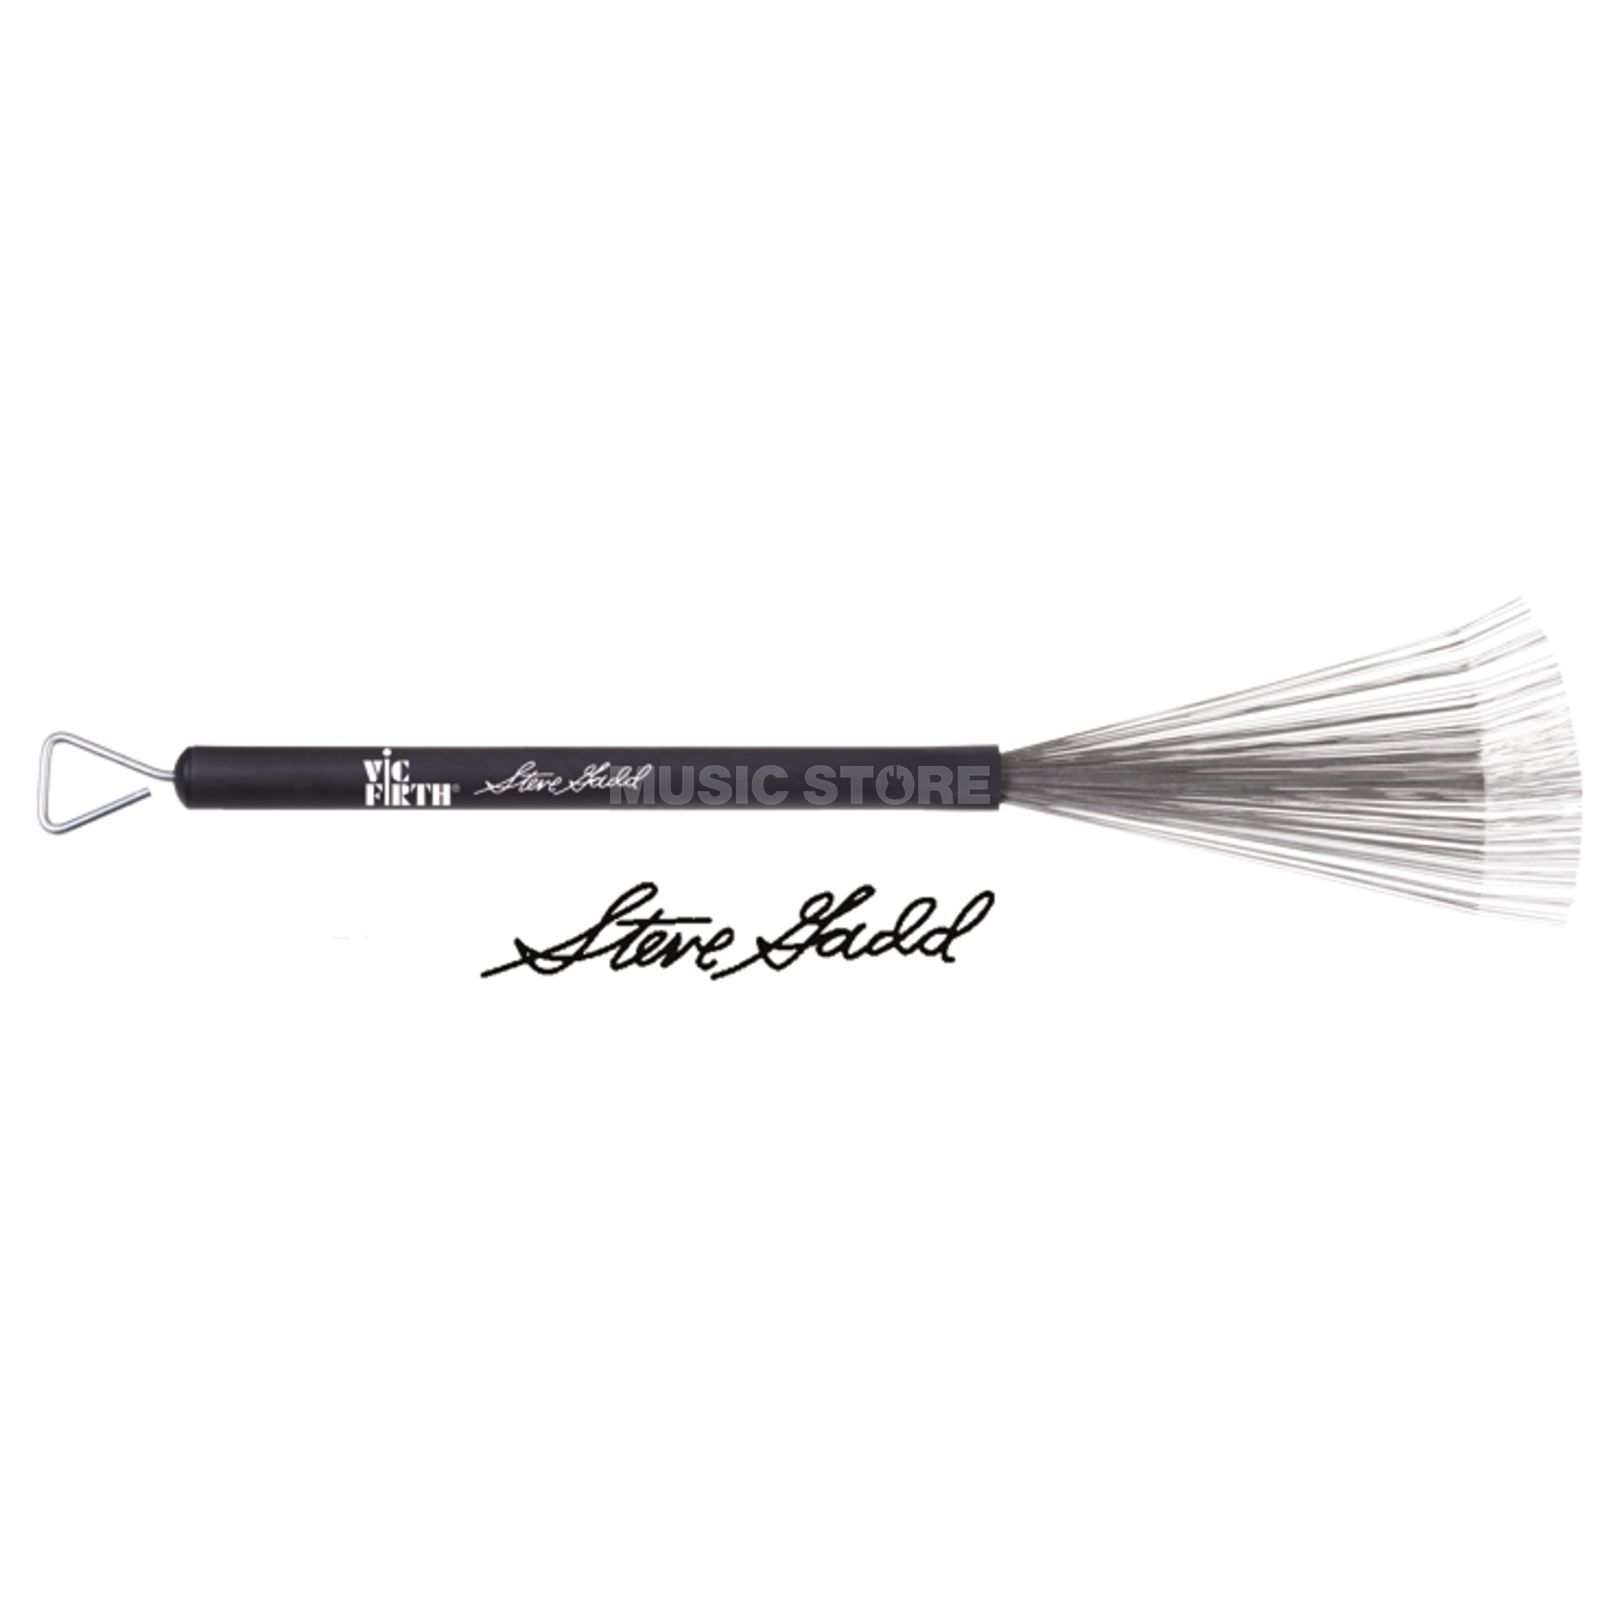 Vic-Firth Steve Gadd Wire Brushes SGWB, Signature Series Image du produit